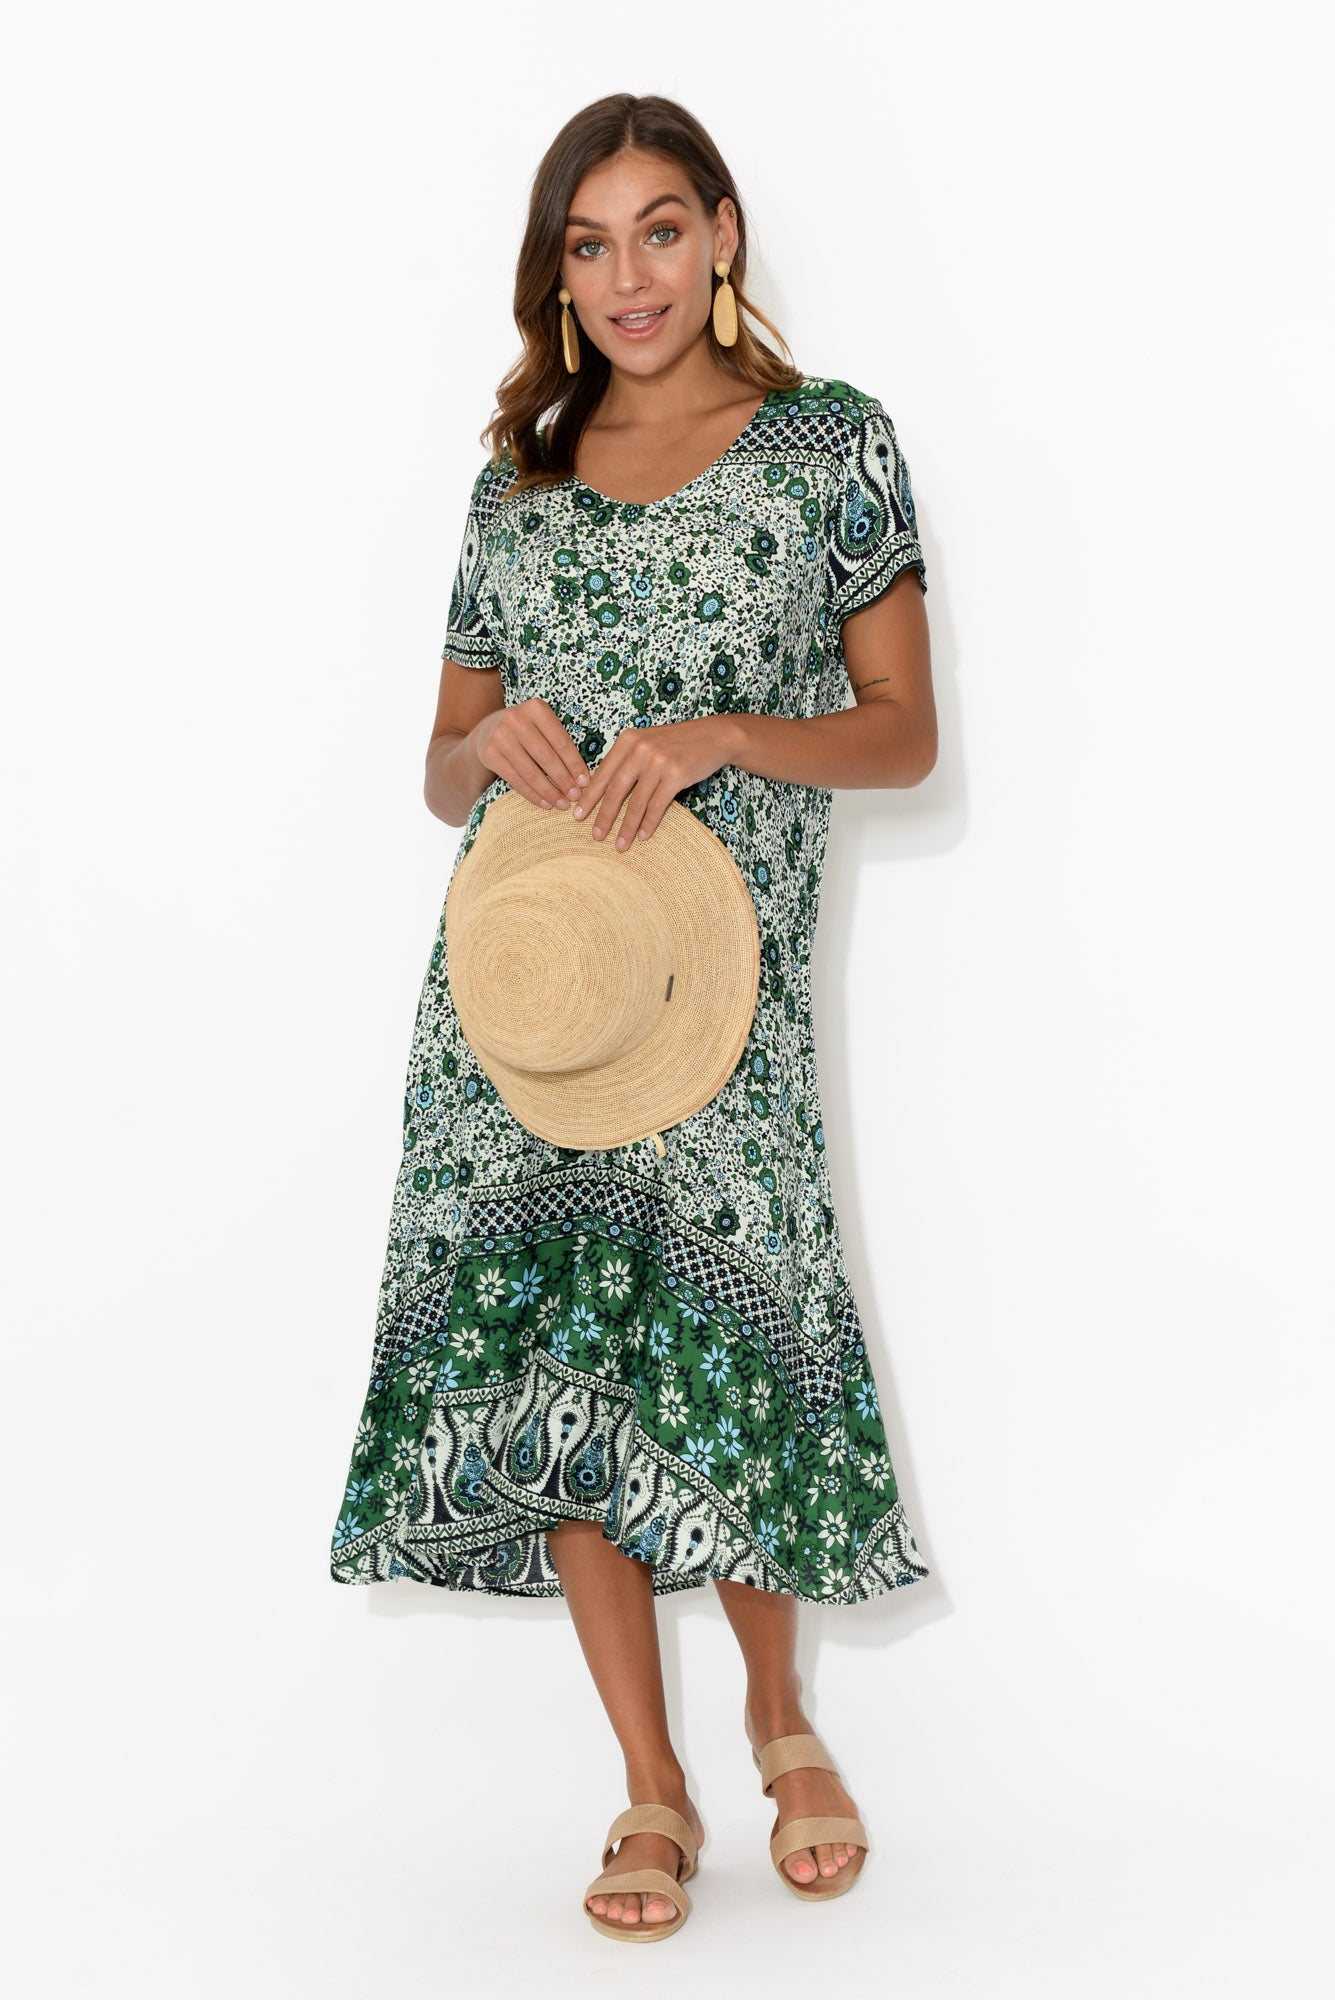 June Green Floral Swing Dress